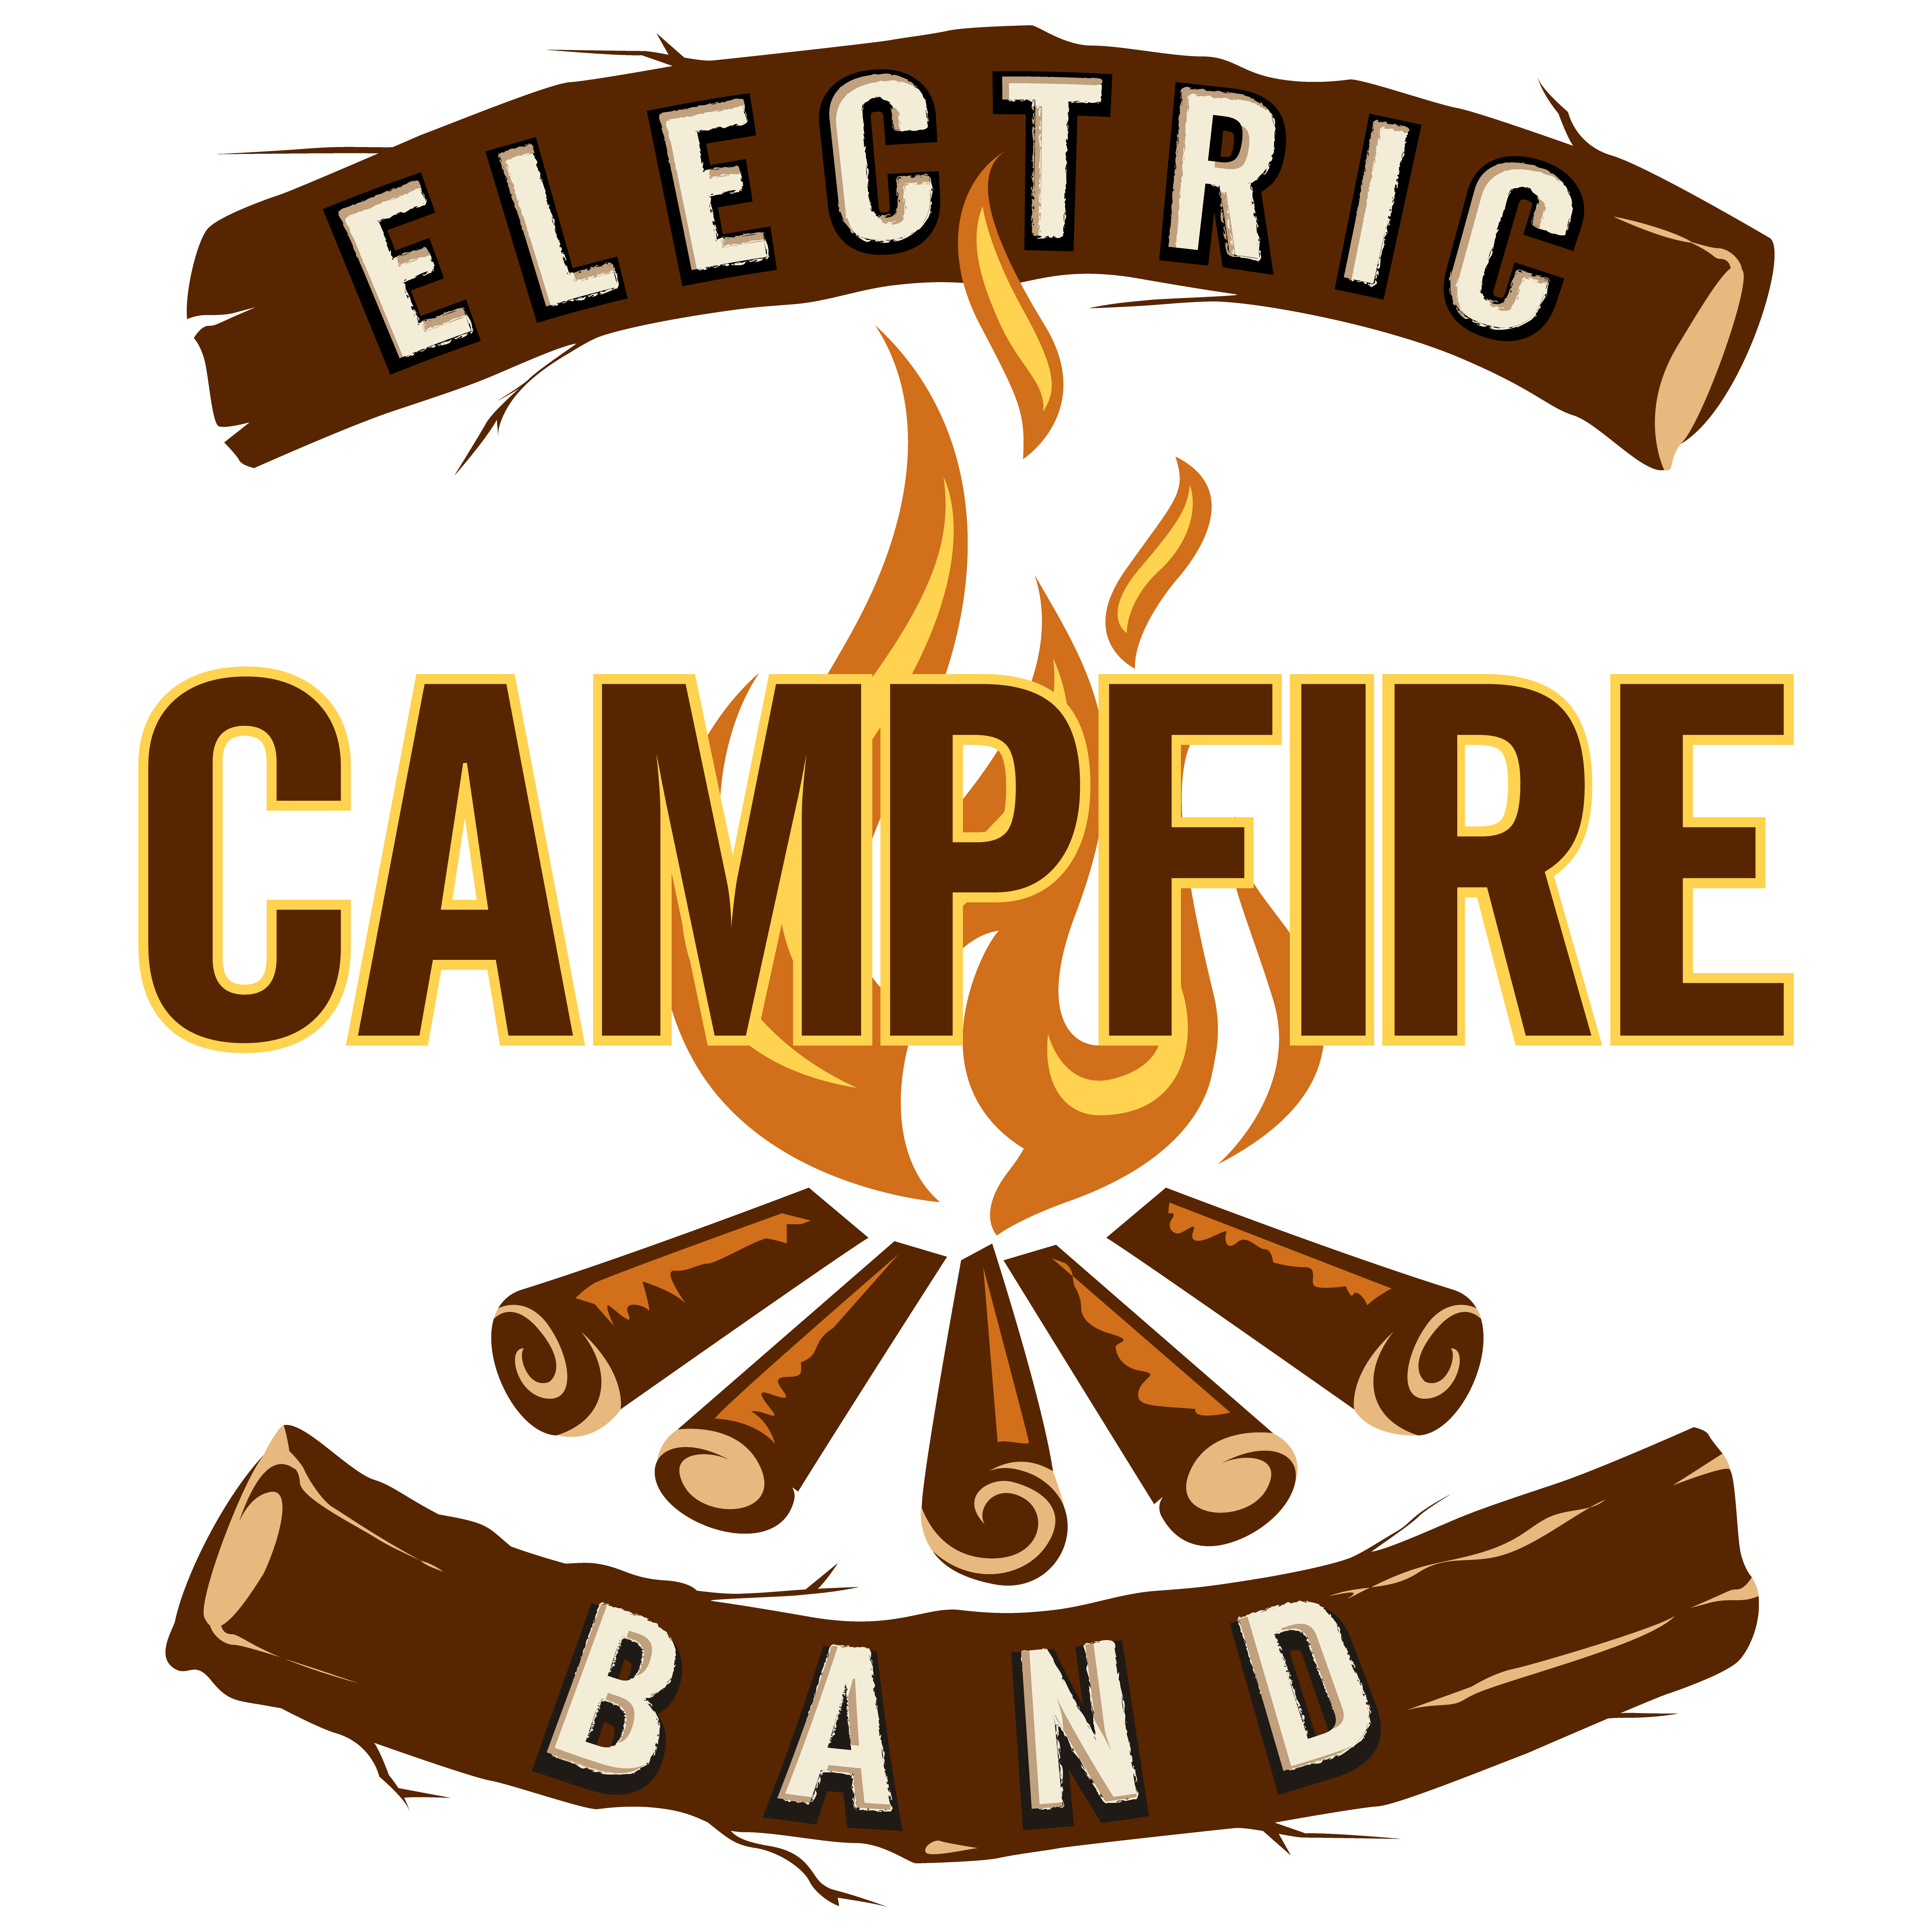 Electric Campfire Band — Gather 'Round. Sing Along. - Electric Campfire Band — Gather 'Round. Sing Along.